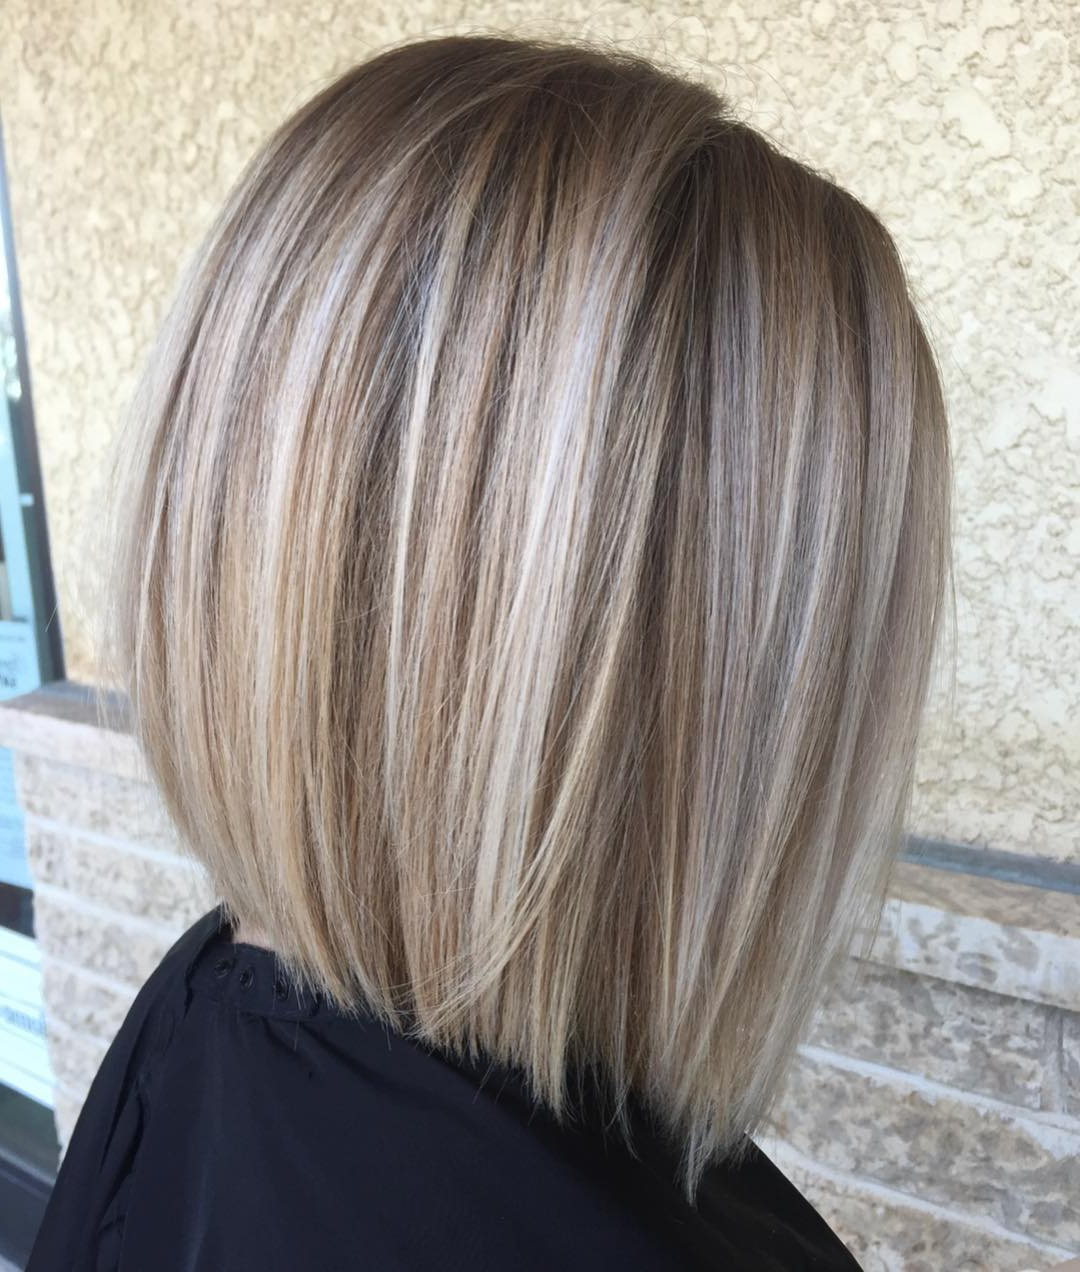 How To Pull Off Medium Length Haircuts And Hairstyles In 2019 Pertaining To Fashionable Mid Length Sliced Bronde Haircuts (View 6 of 20)